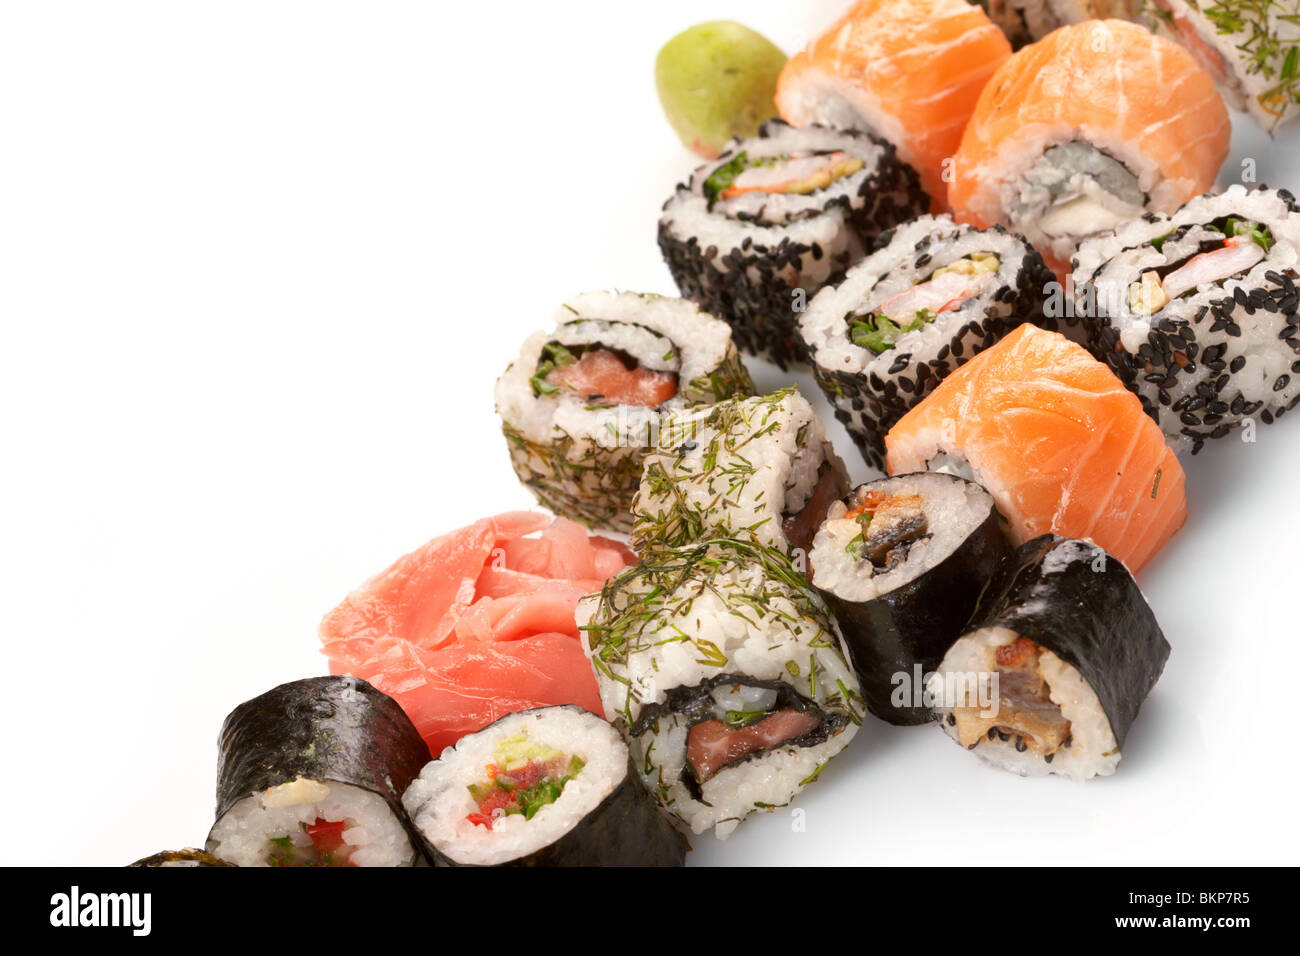 Different types of sushi - Stock Image